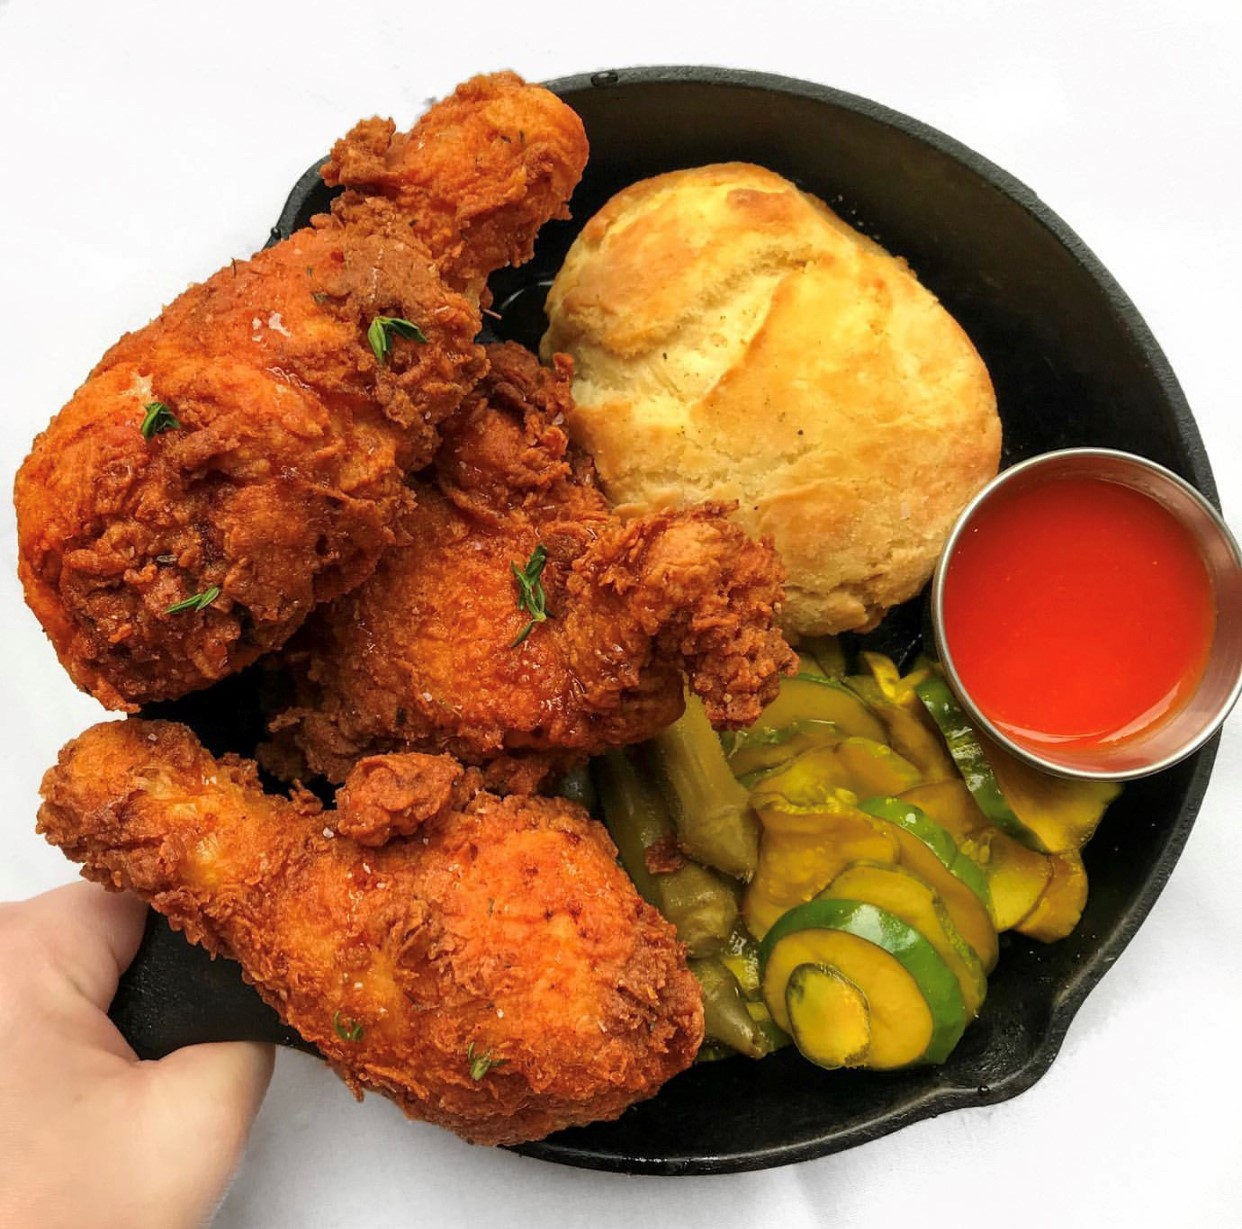 fried chicken and vegetables and a roll